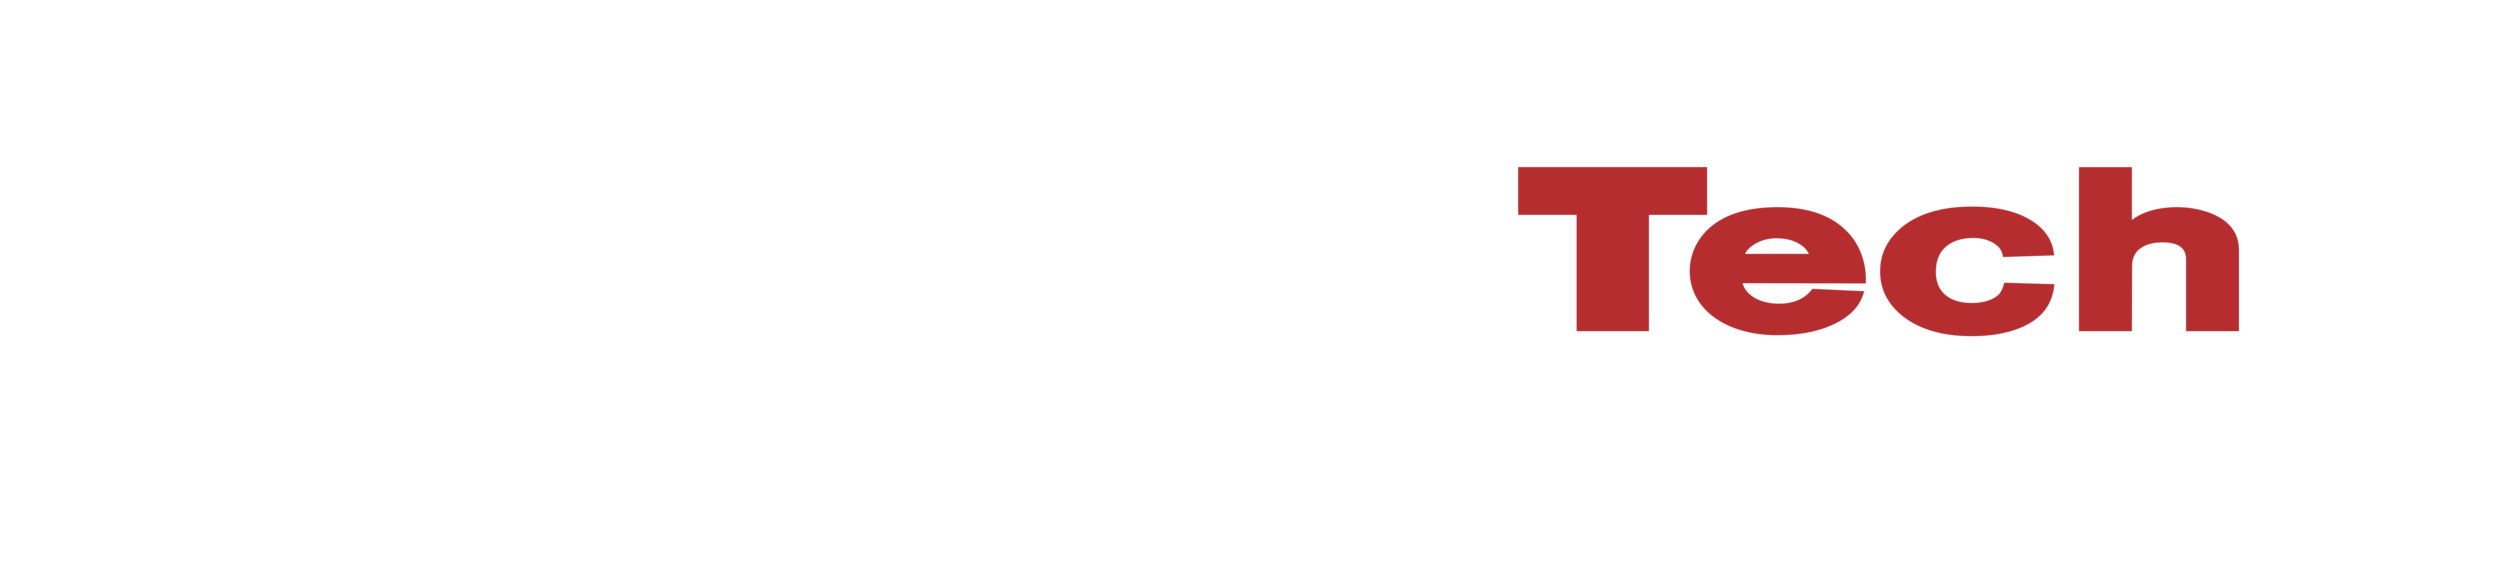 weathertech_logo [Converted]-01.png